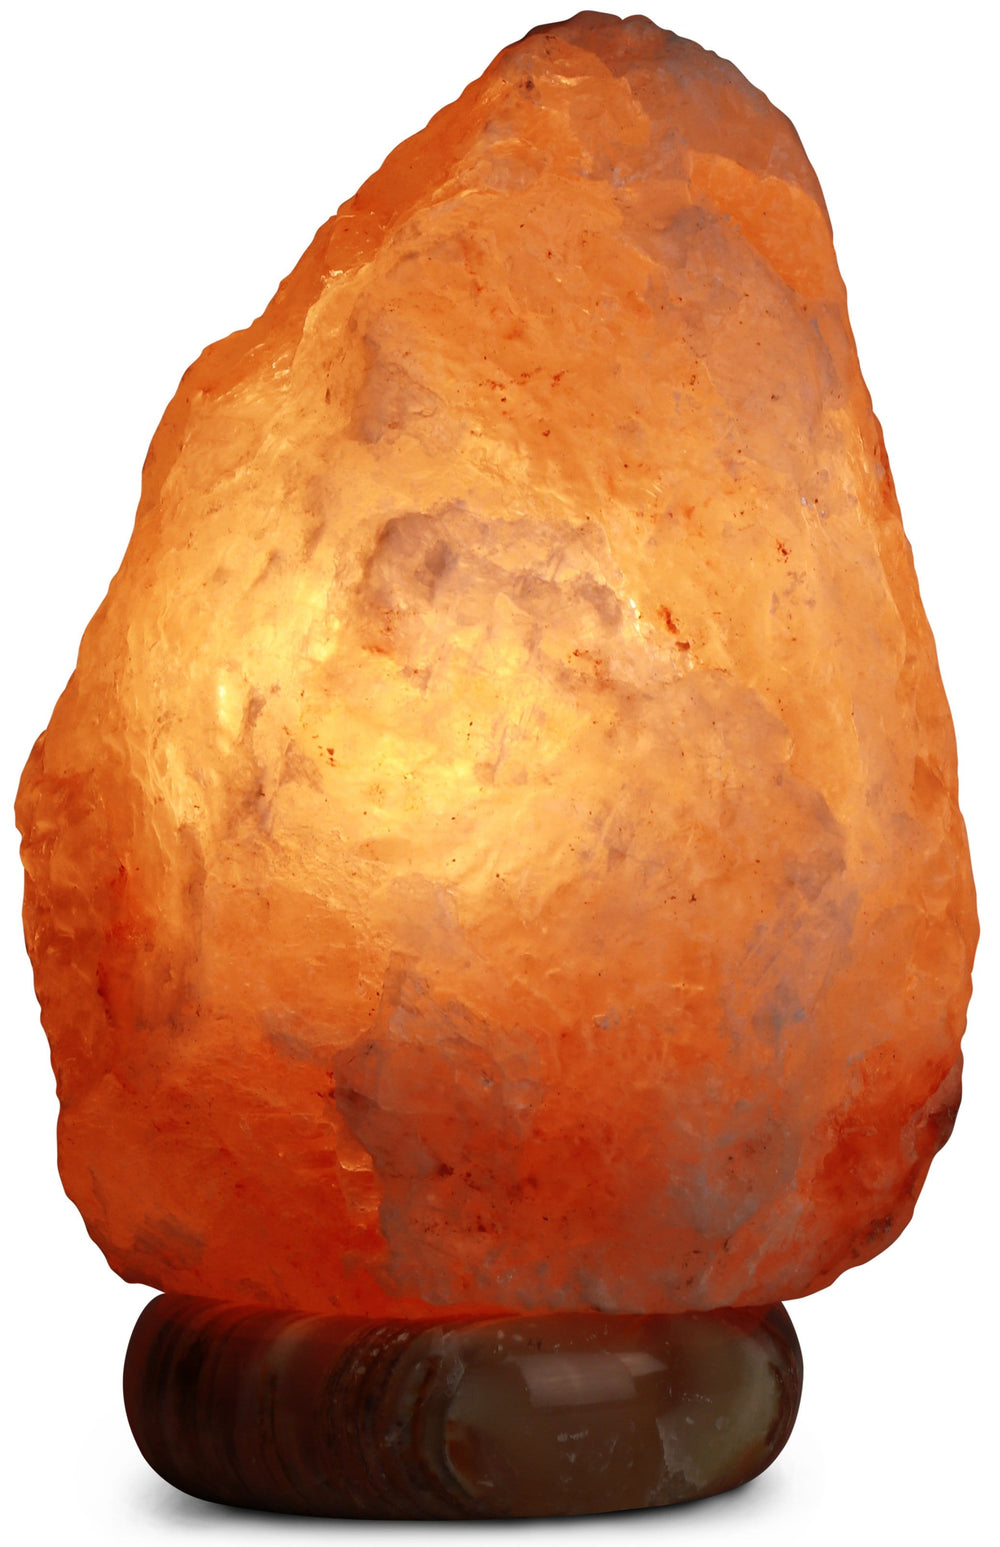 Himalayan Rock Salt Natural Crystal Lamp, 9.5 Inches Tall - Soft Calm Therapeutic Light - Naturally Formed Salt Crystal Design On Onyx Marble Base - Tibetan Evaporated Rock Lamps - , Dark Orange Hue